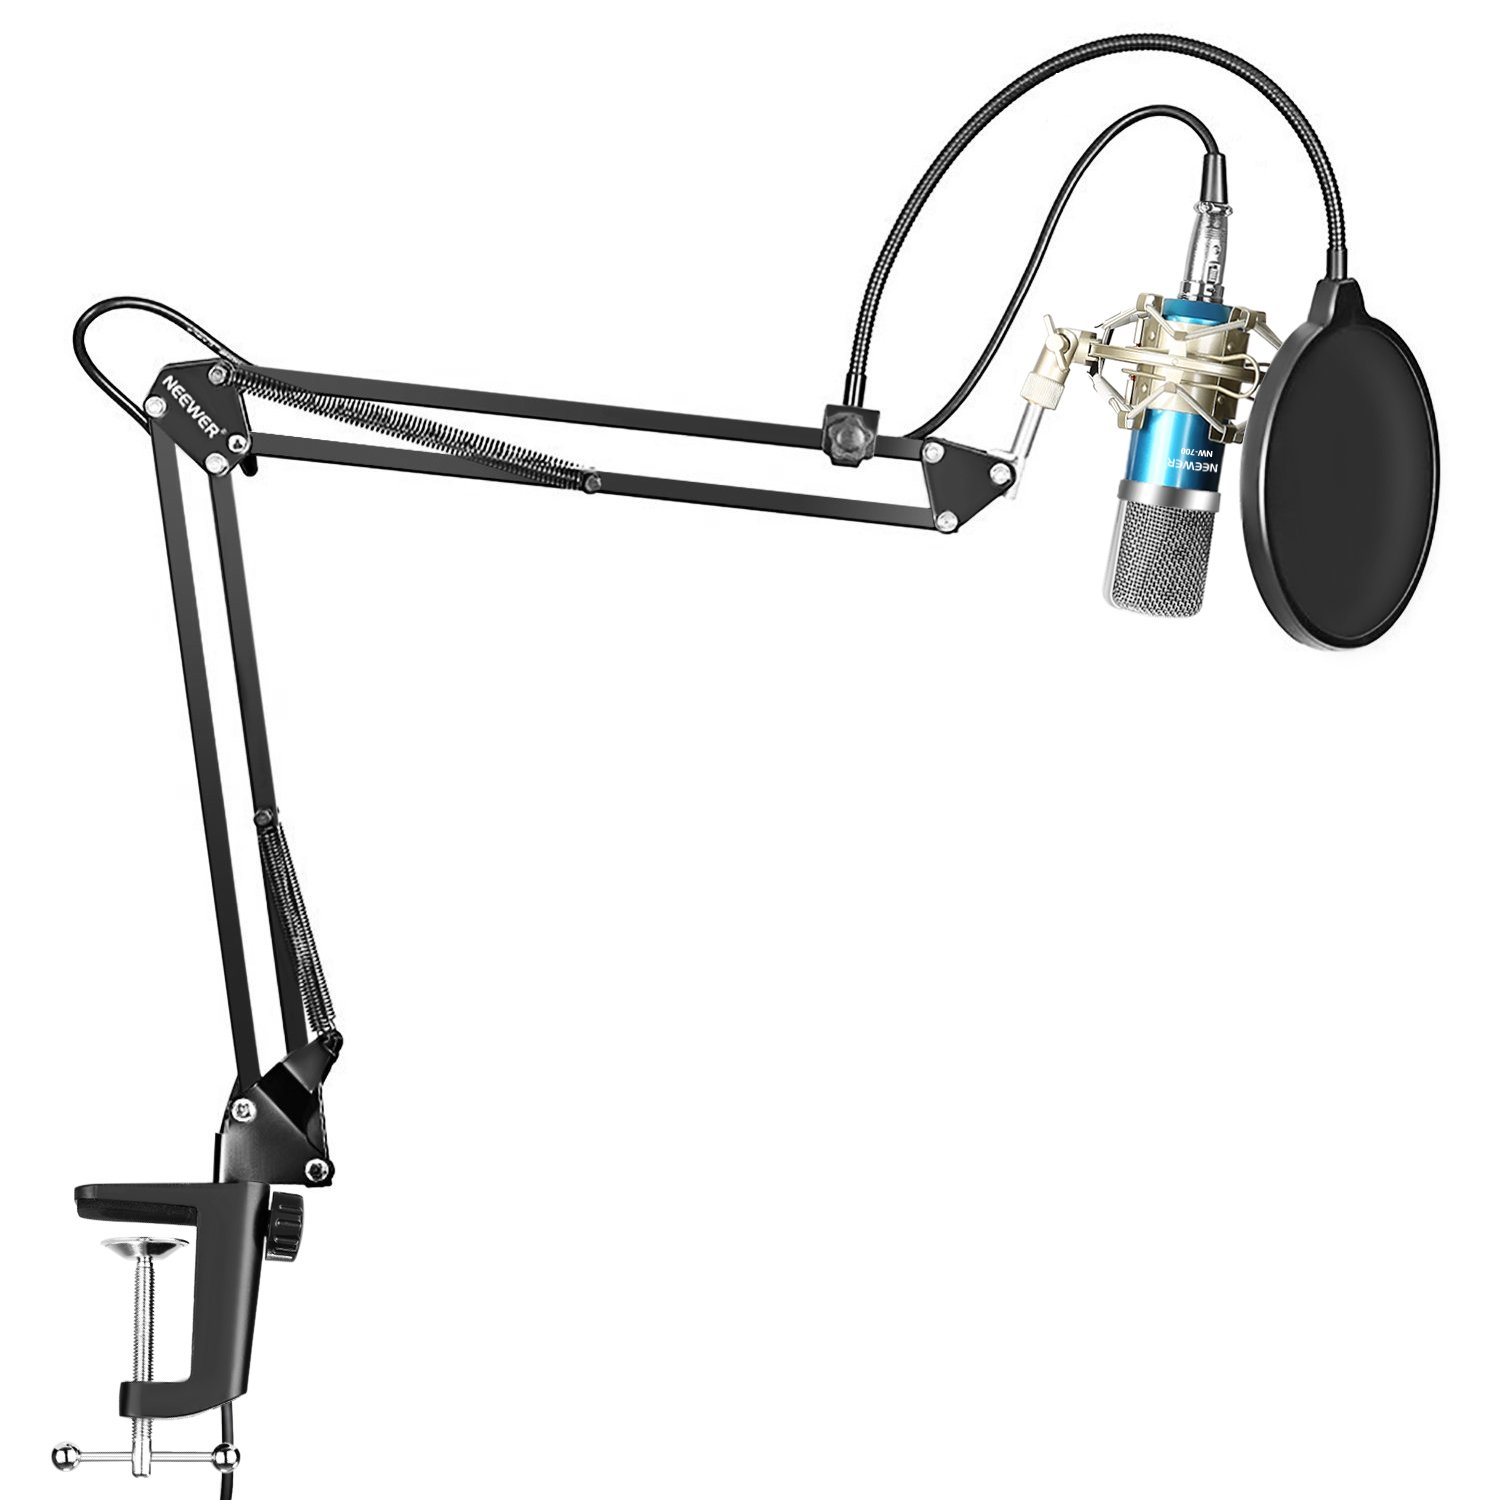 Neewer Professional Studio Broadcasting Recording Condenser Microphone & NW-35 Adjustable Recording Microphone Suspension Scissor Arm Stand with Shock Mount and Mounting Clamp Kit, Blue by Neewer